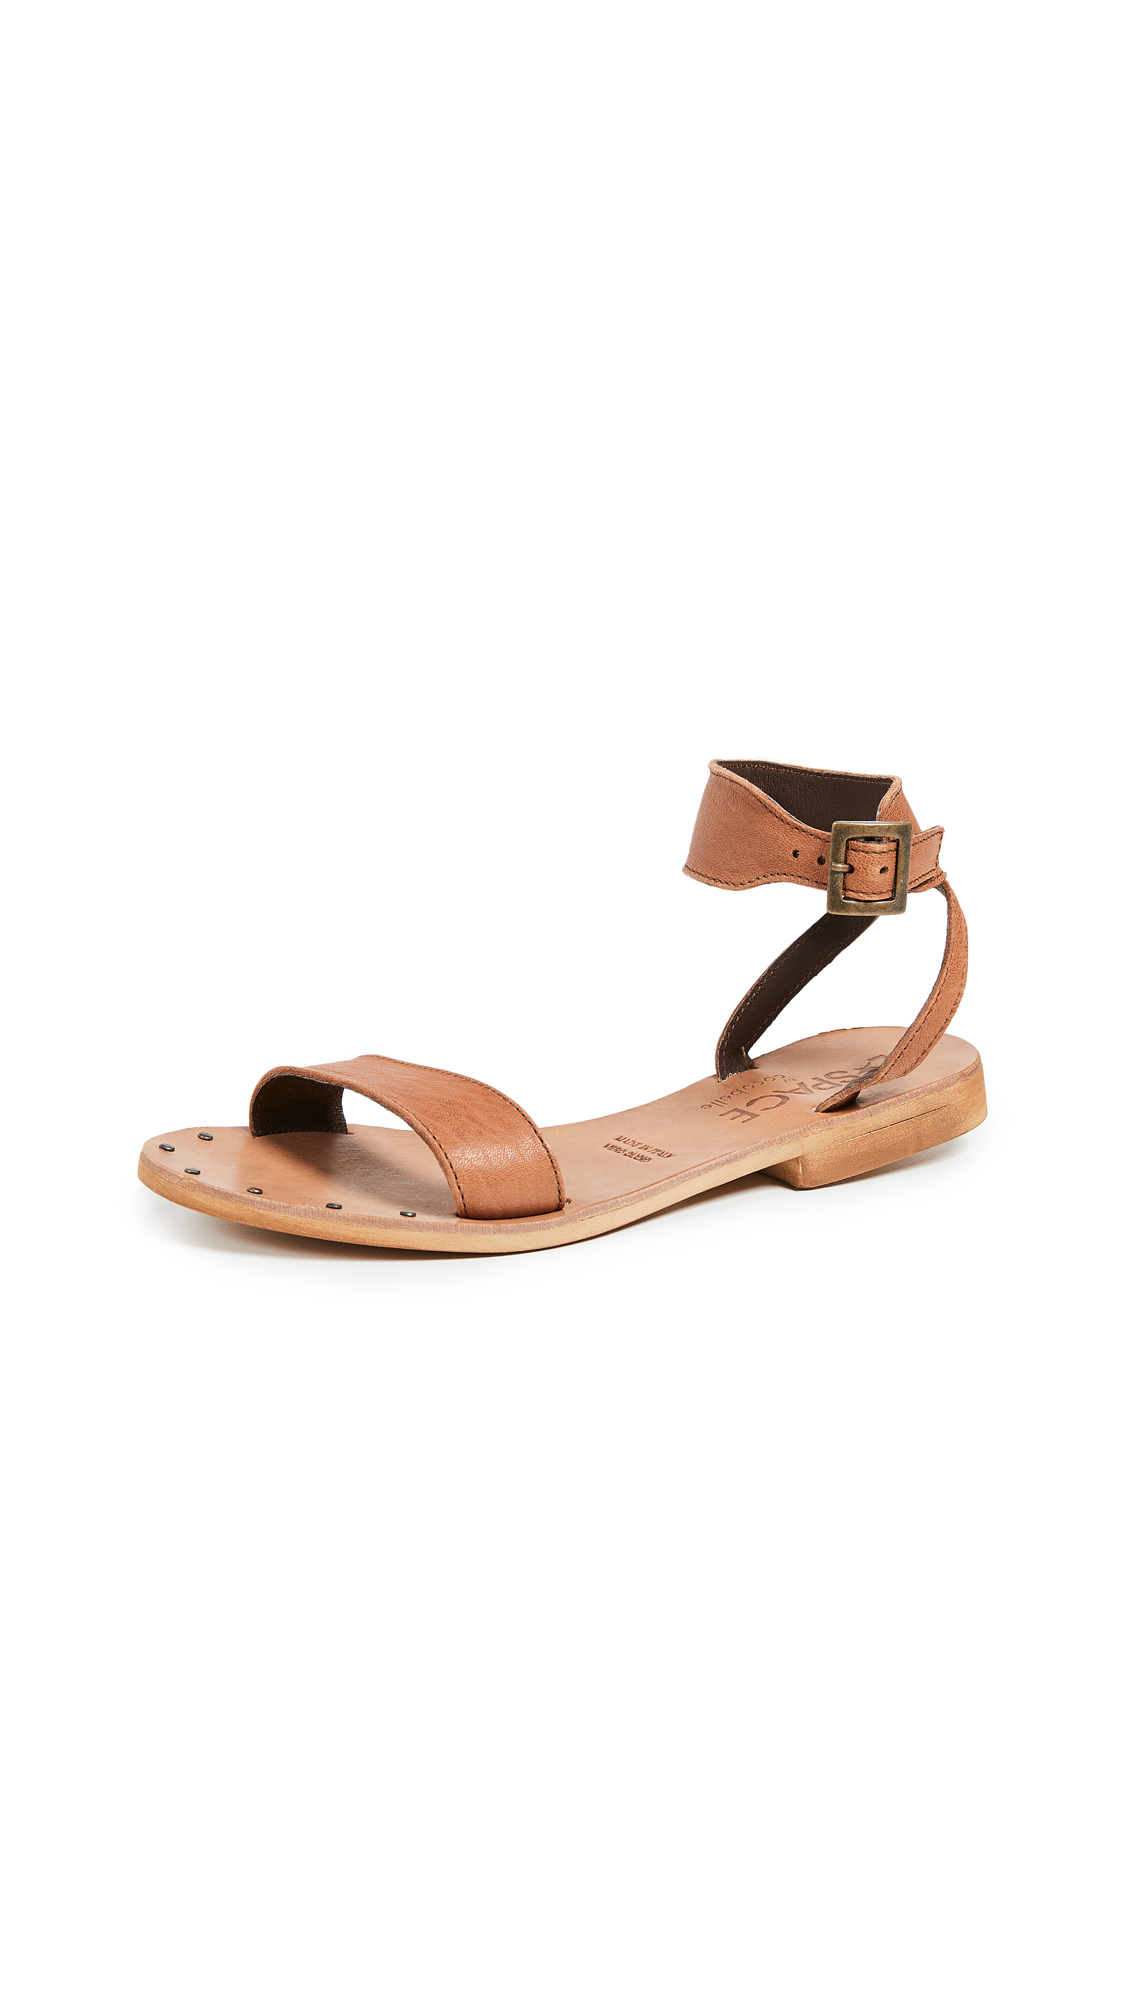 Cocobelle x L*Space Hanalei Sandals - Brown